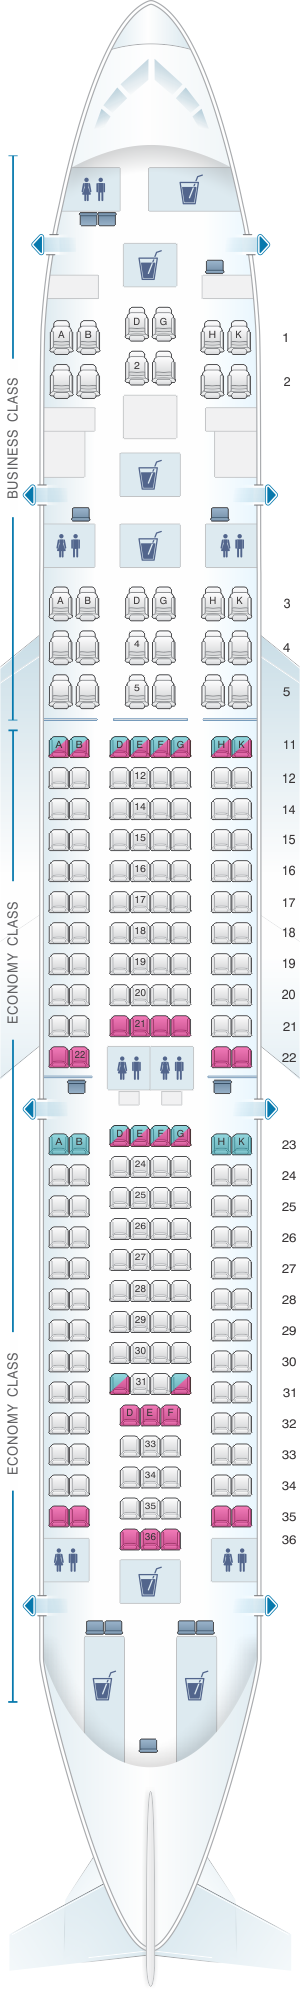 Seat map for Kingfisher Airlines Airbus A330 200